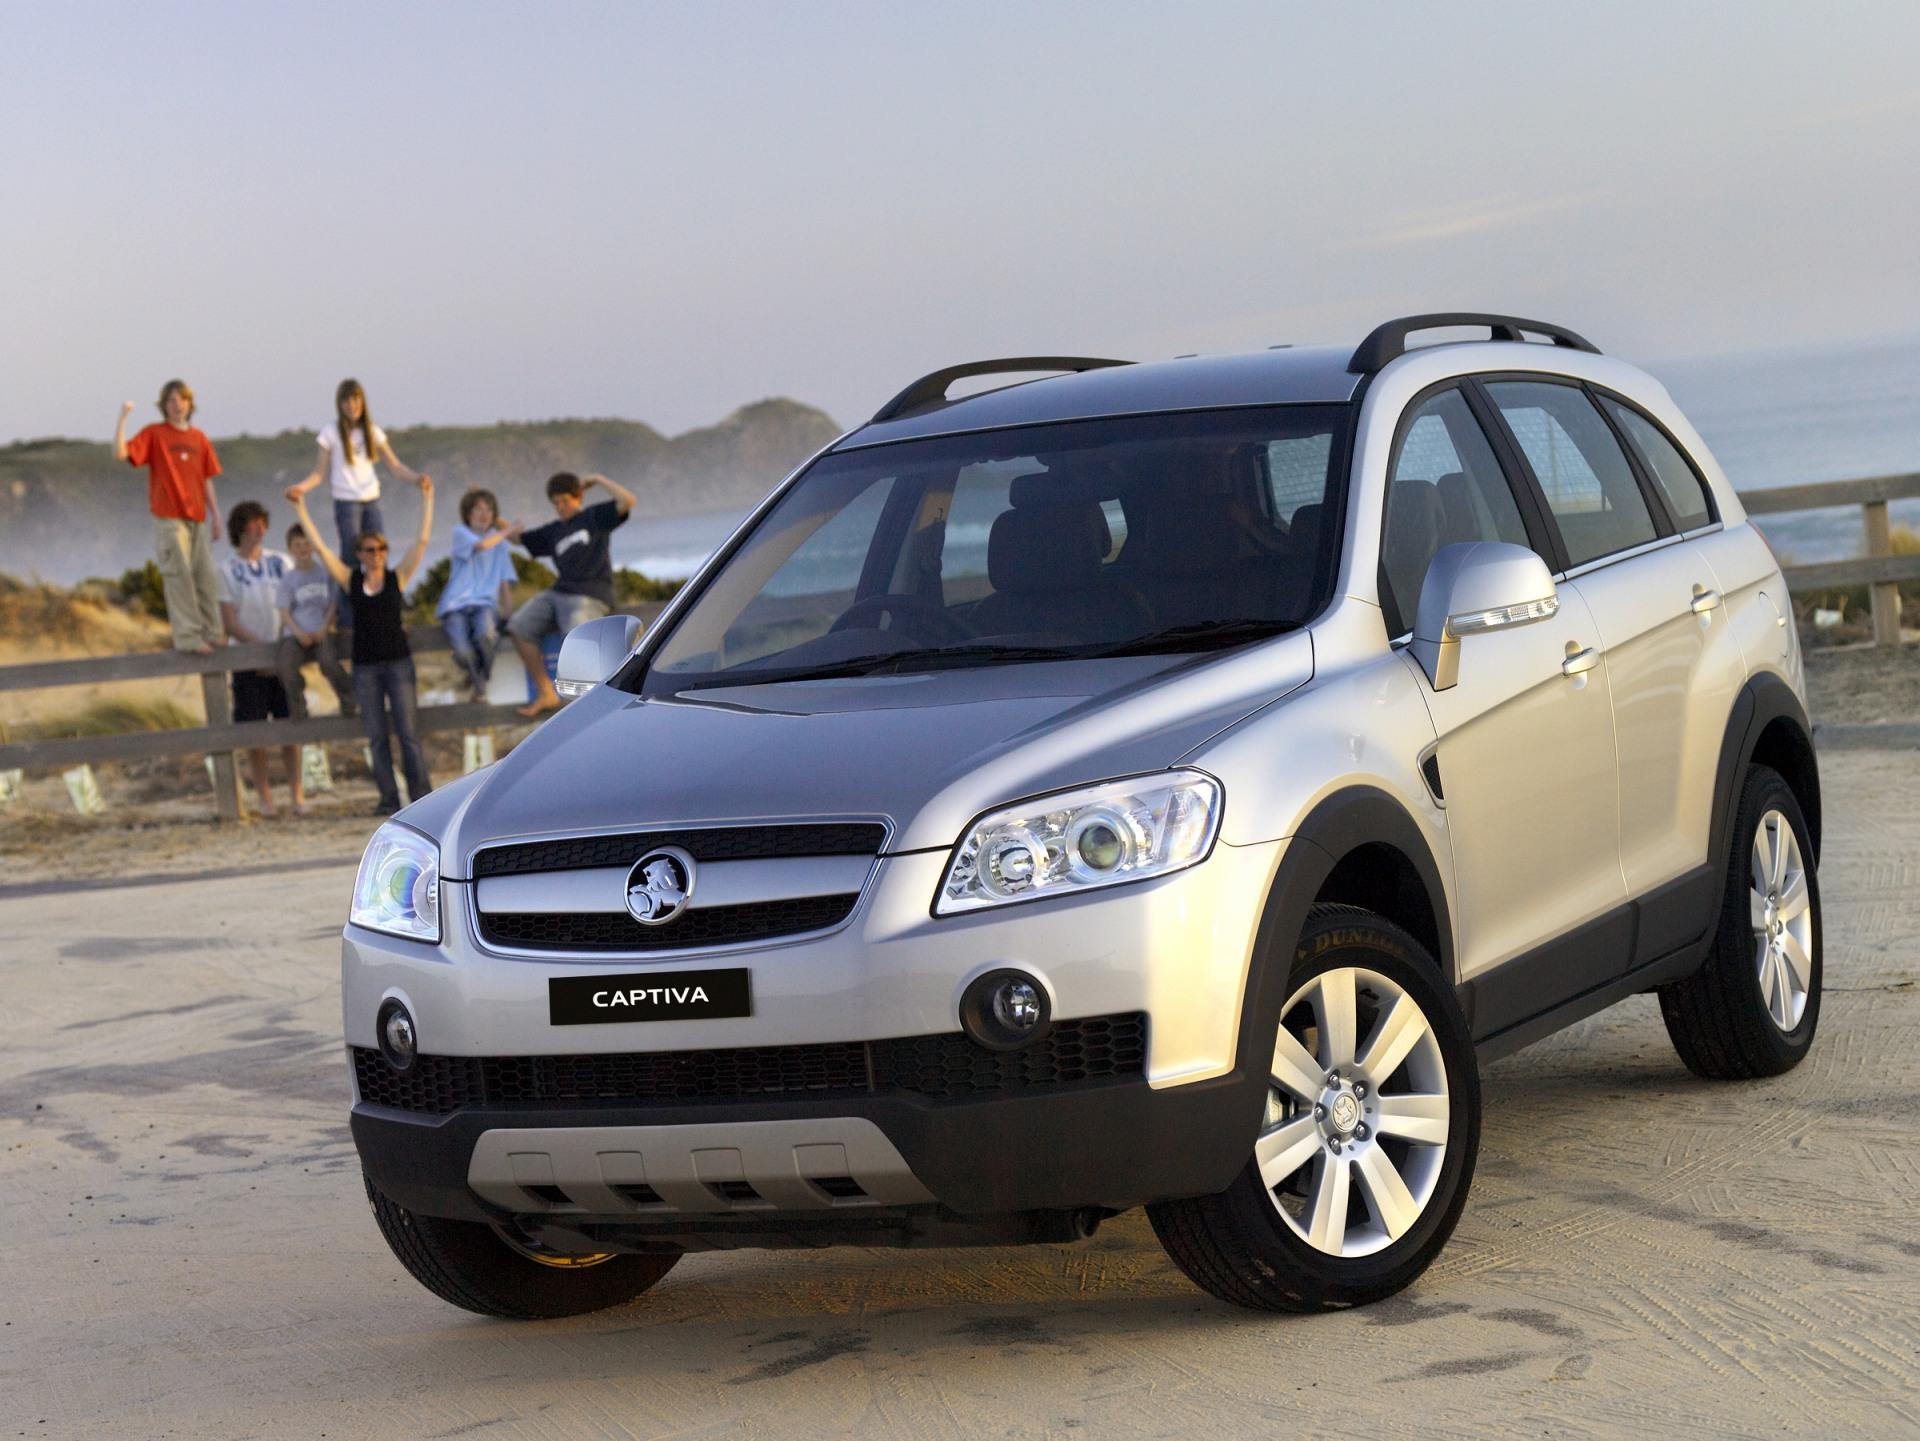 2009 Holden Captiva News and Information | conceptcarz.com